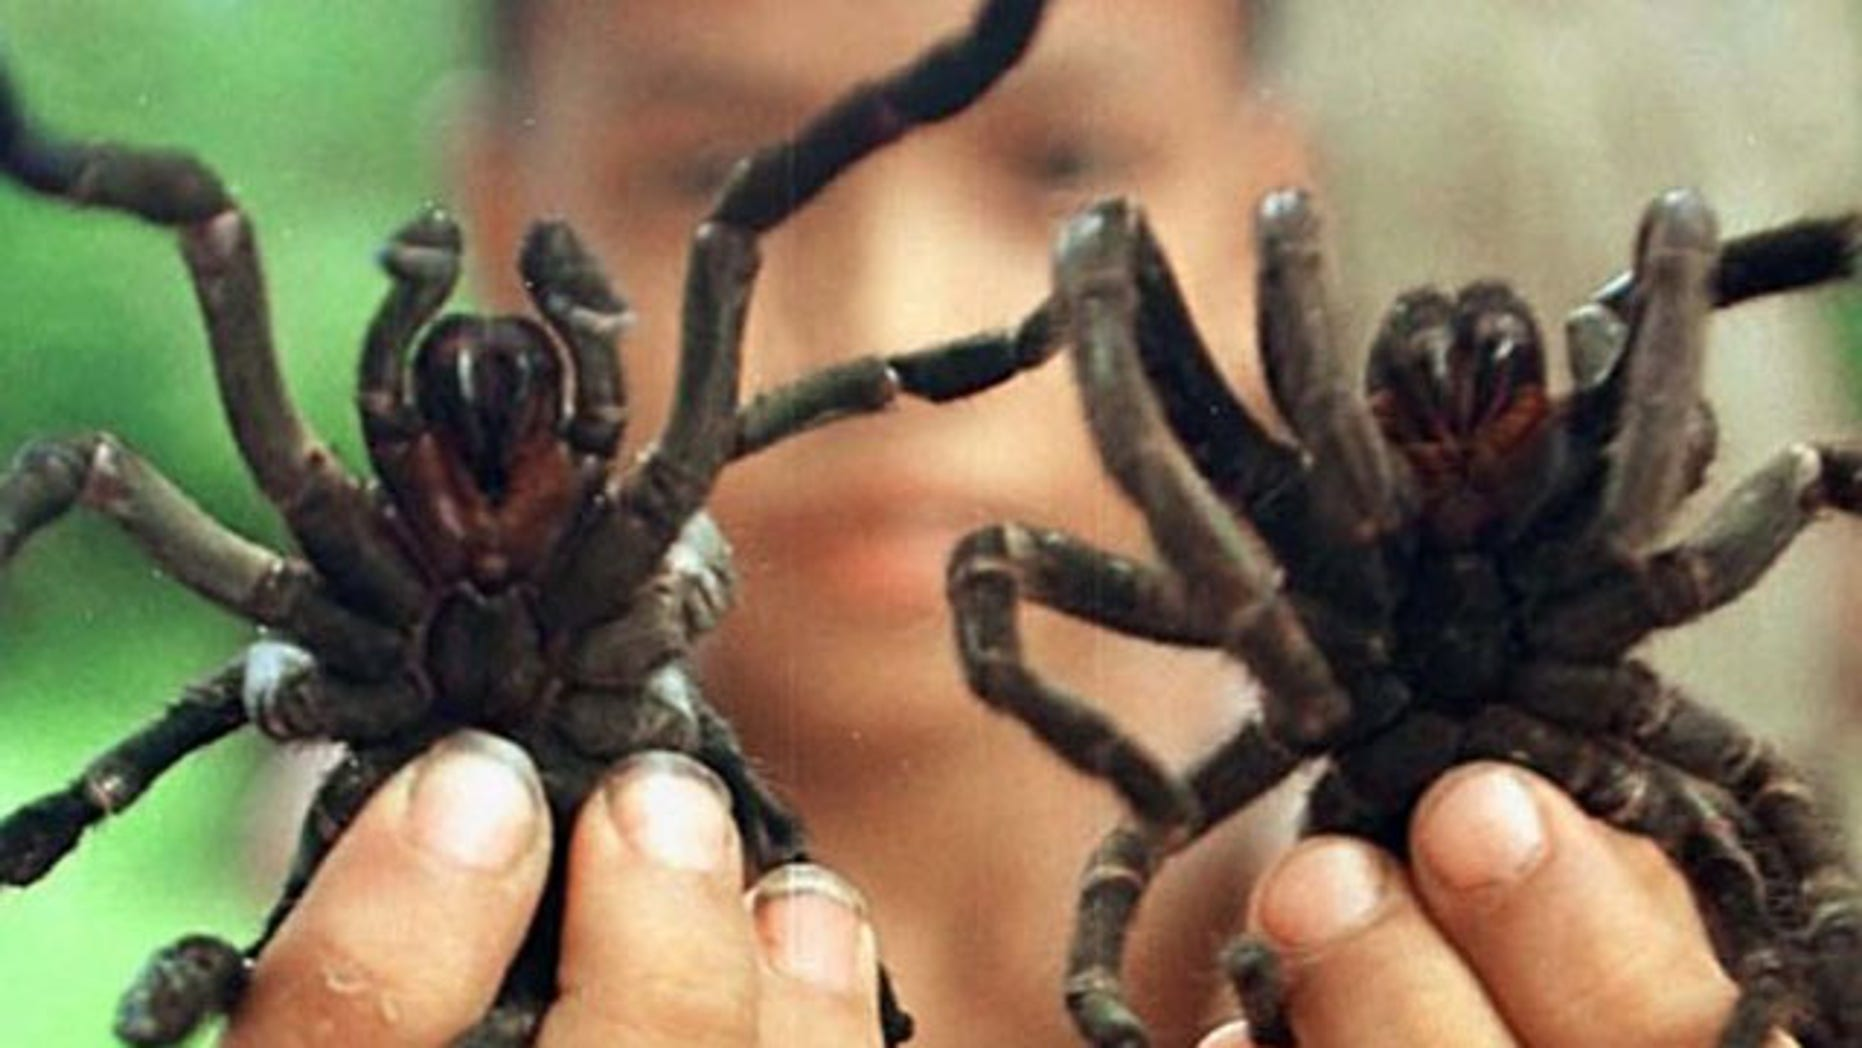 A Cambodian boy displays two live tarantulas, a national delicacy.